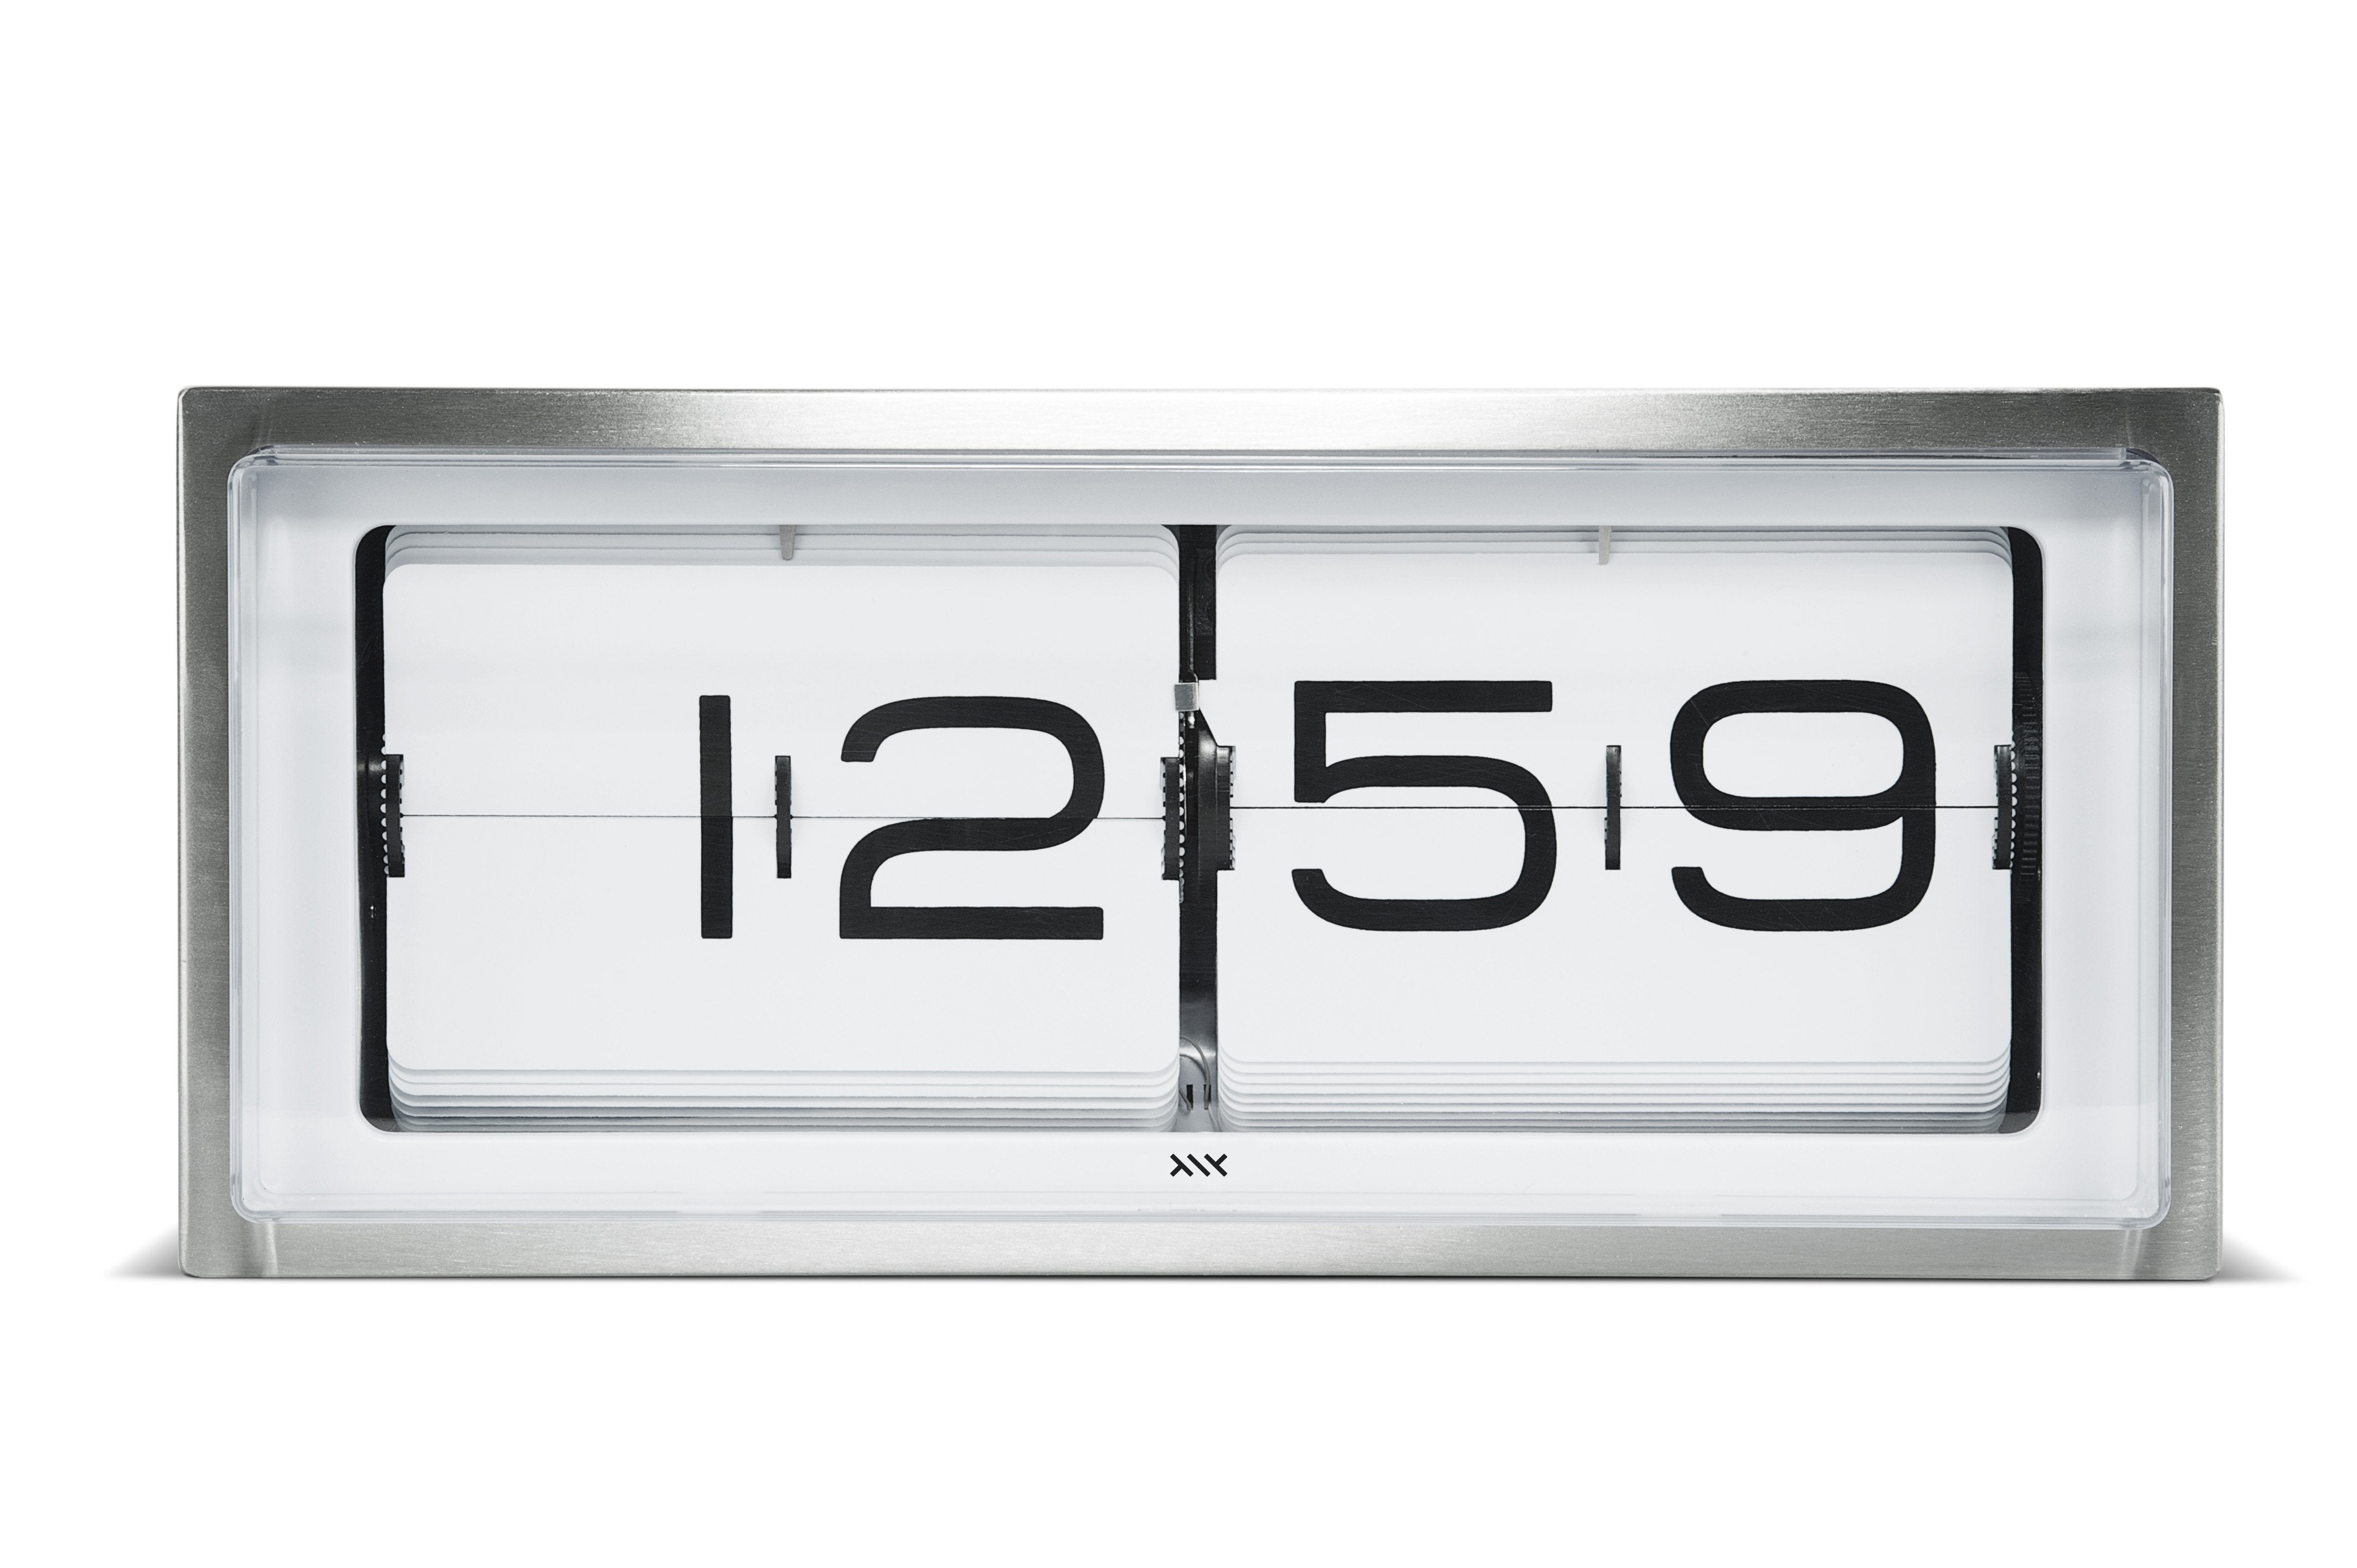 LEFF Amsterdam Brick Wall/Desk Clock - White Face